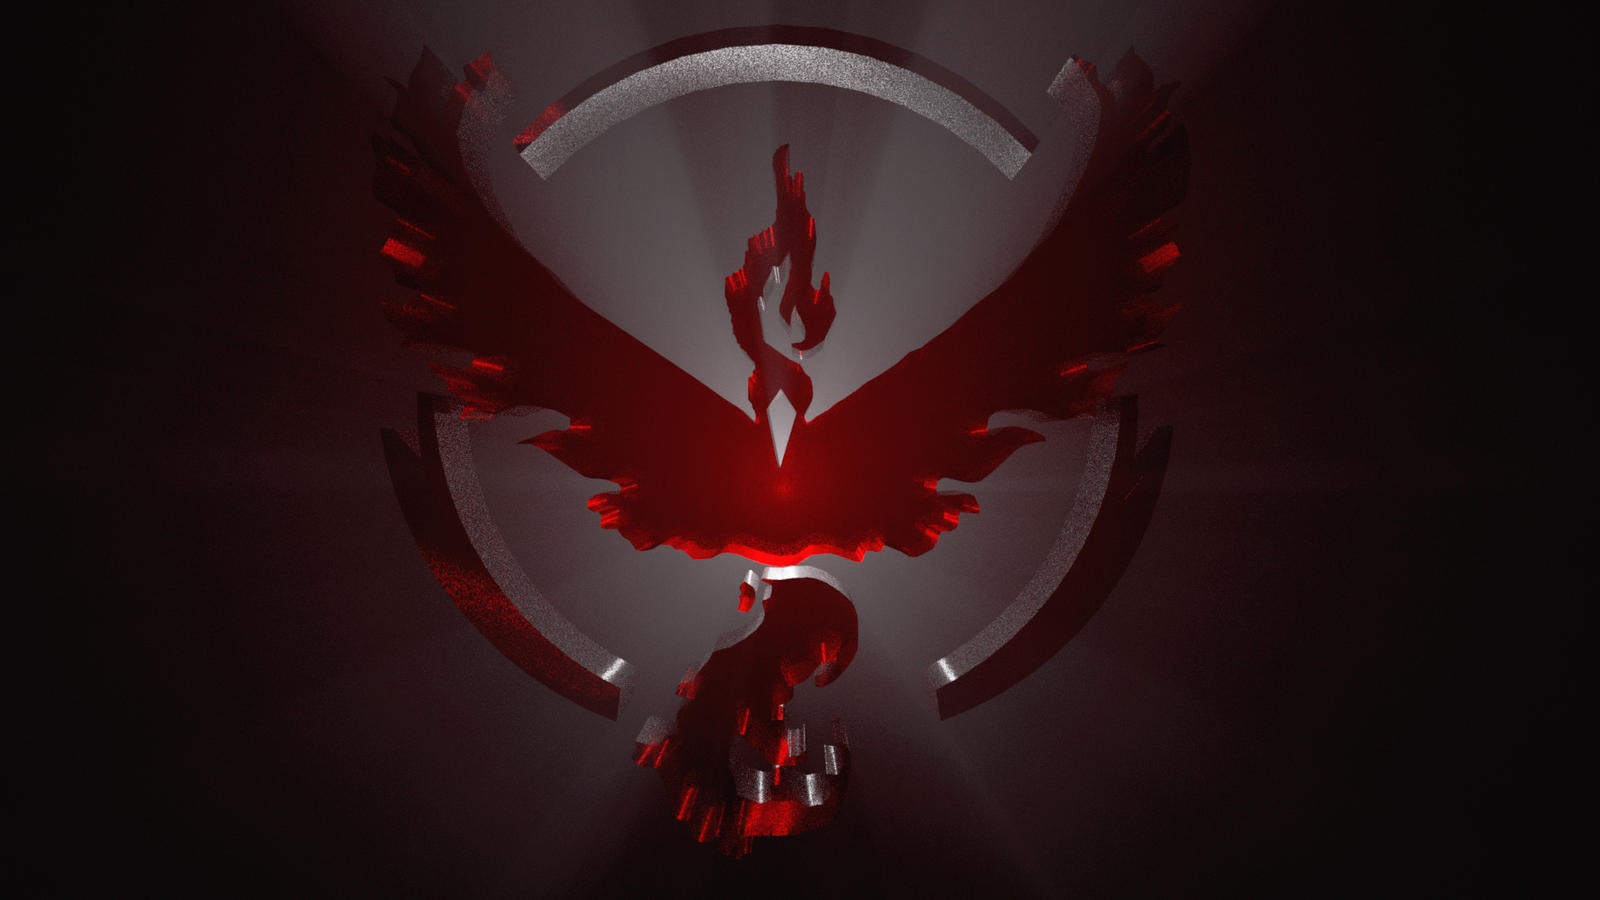 Team Valor by forged3DX on DeviantArt